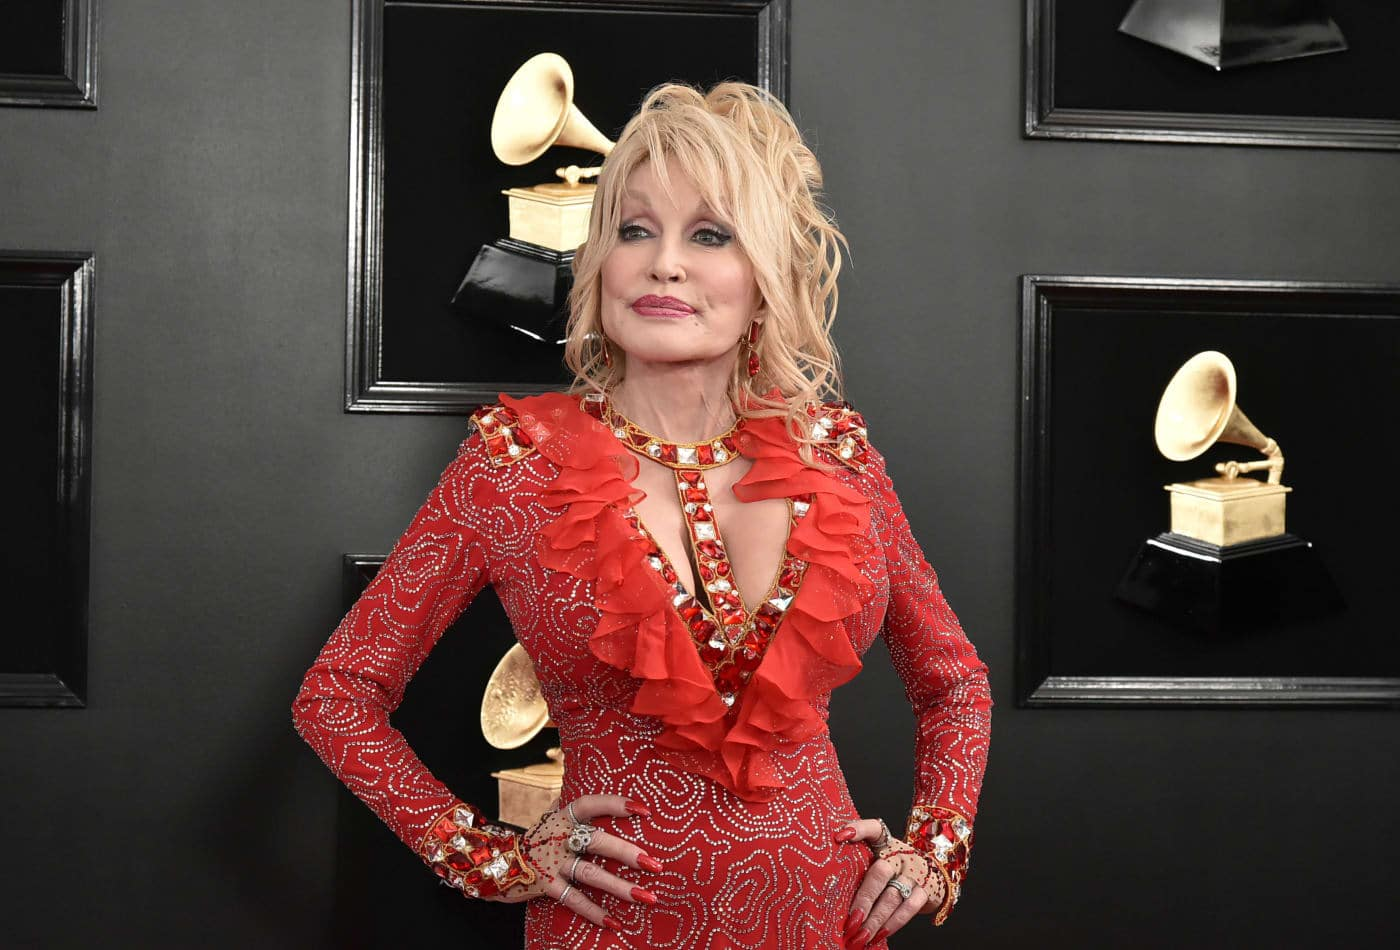 Dolly Parton American Singer, Songwriter, Multi-Instrumentalist, Record Producer, Actress, Author, Businesswoman and Humanitarian